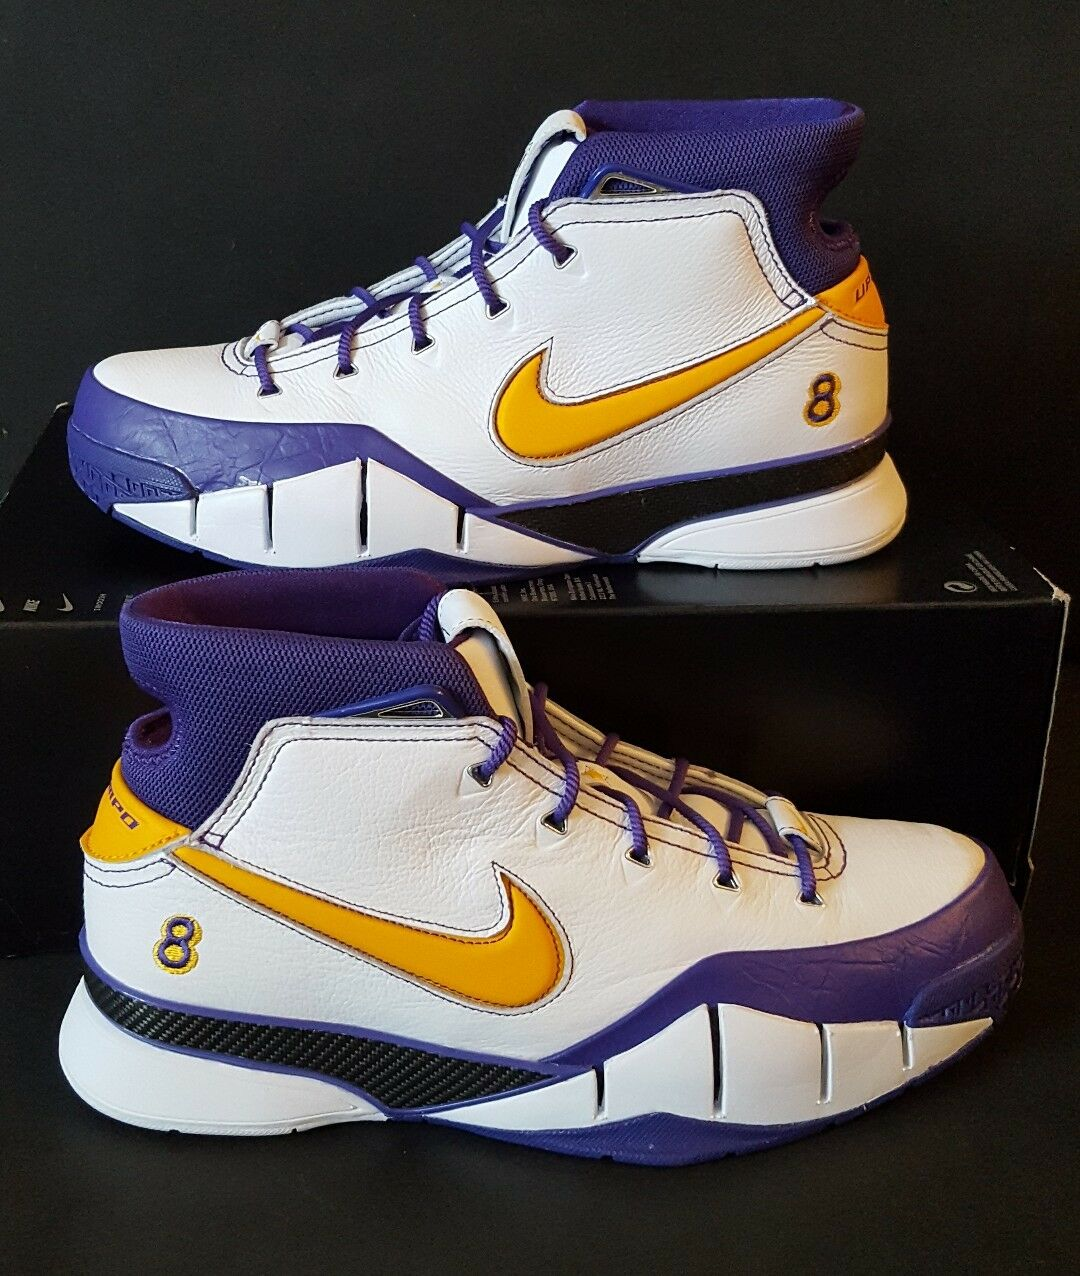 Nike Kobe 1 Protro Think 16 Close Out Final Seconds AQ2728-101 Mamba Sz 10.5